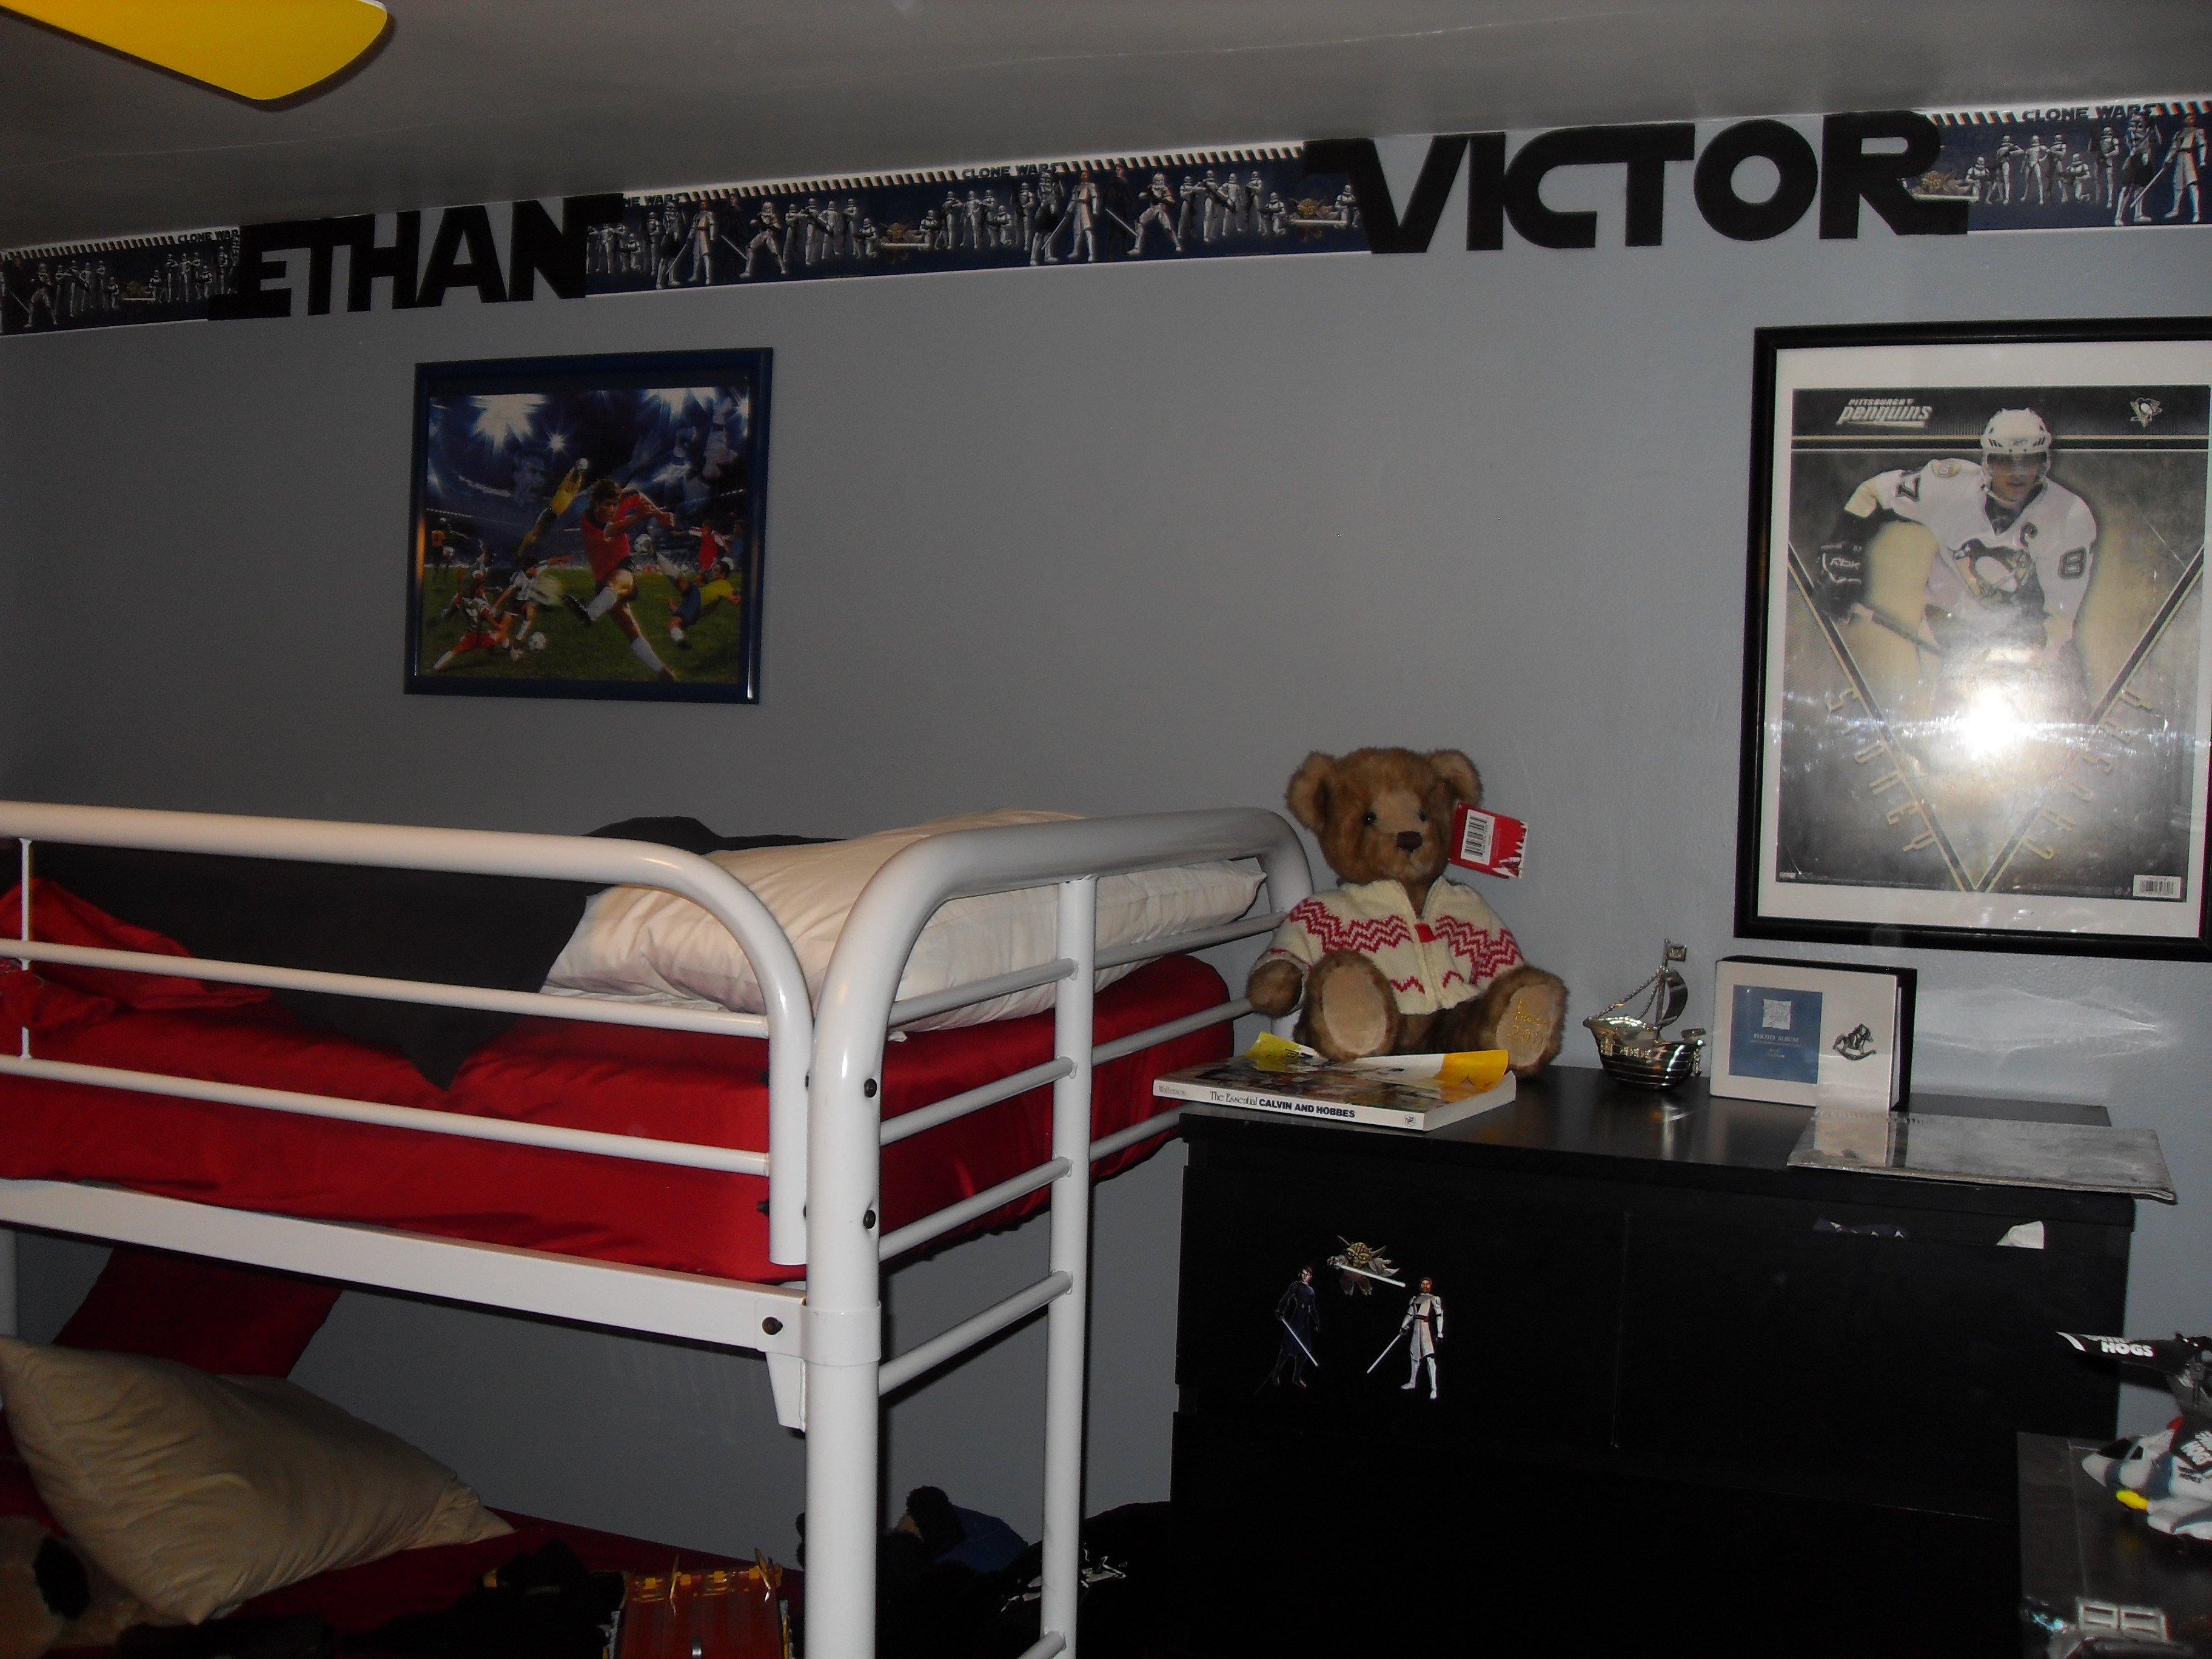 Star Wars Bedroom Ideas Themes The Ultimate Star Wars Bedroom The Moreau Family Blog